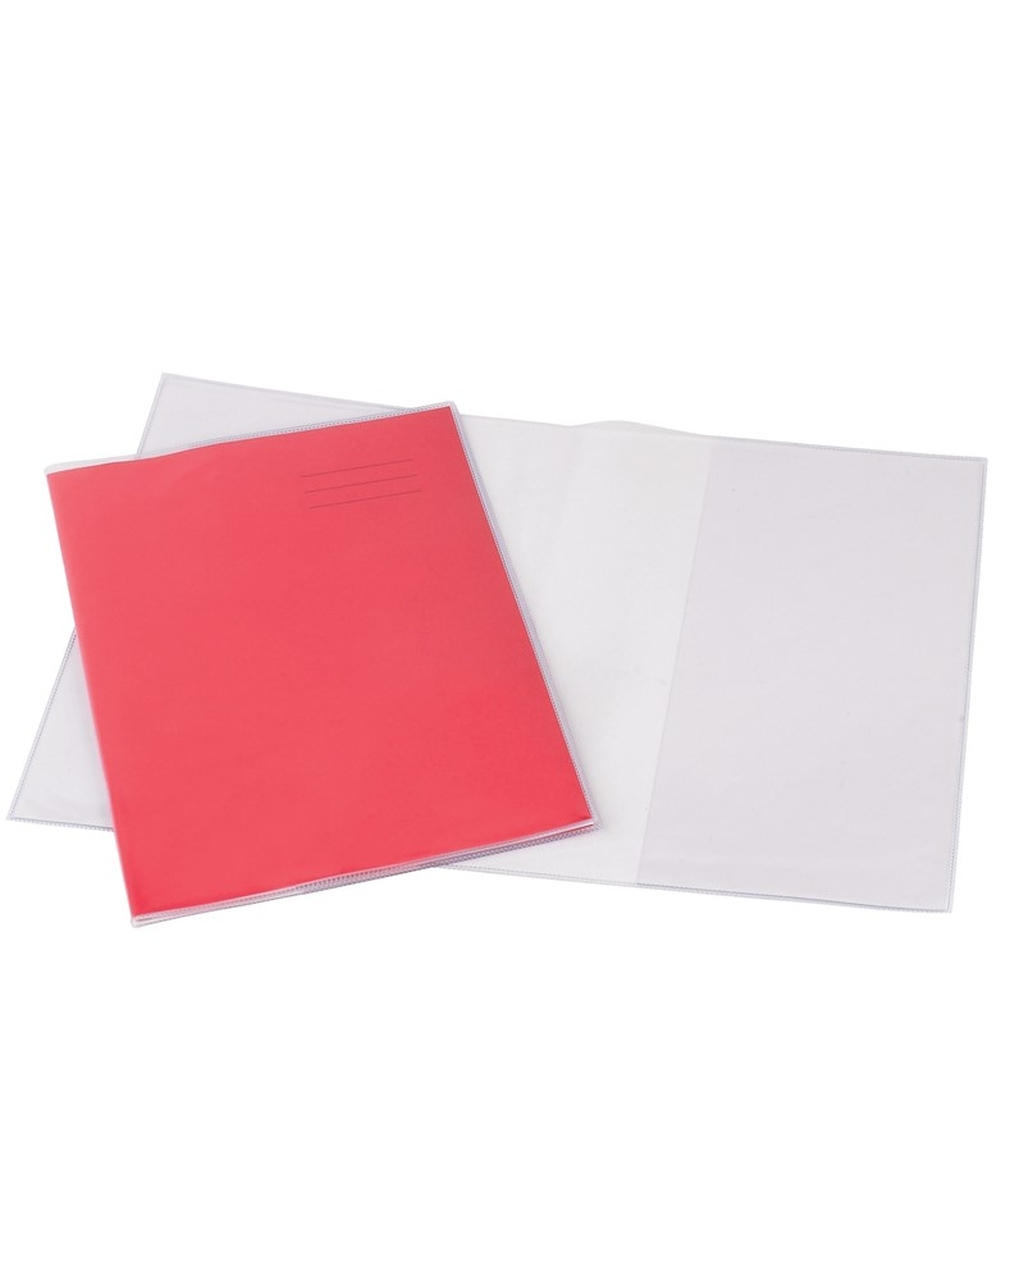 9 X 7 Clear Exercise Book Covers